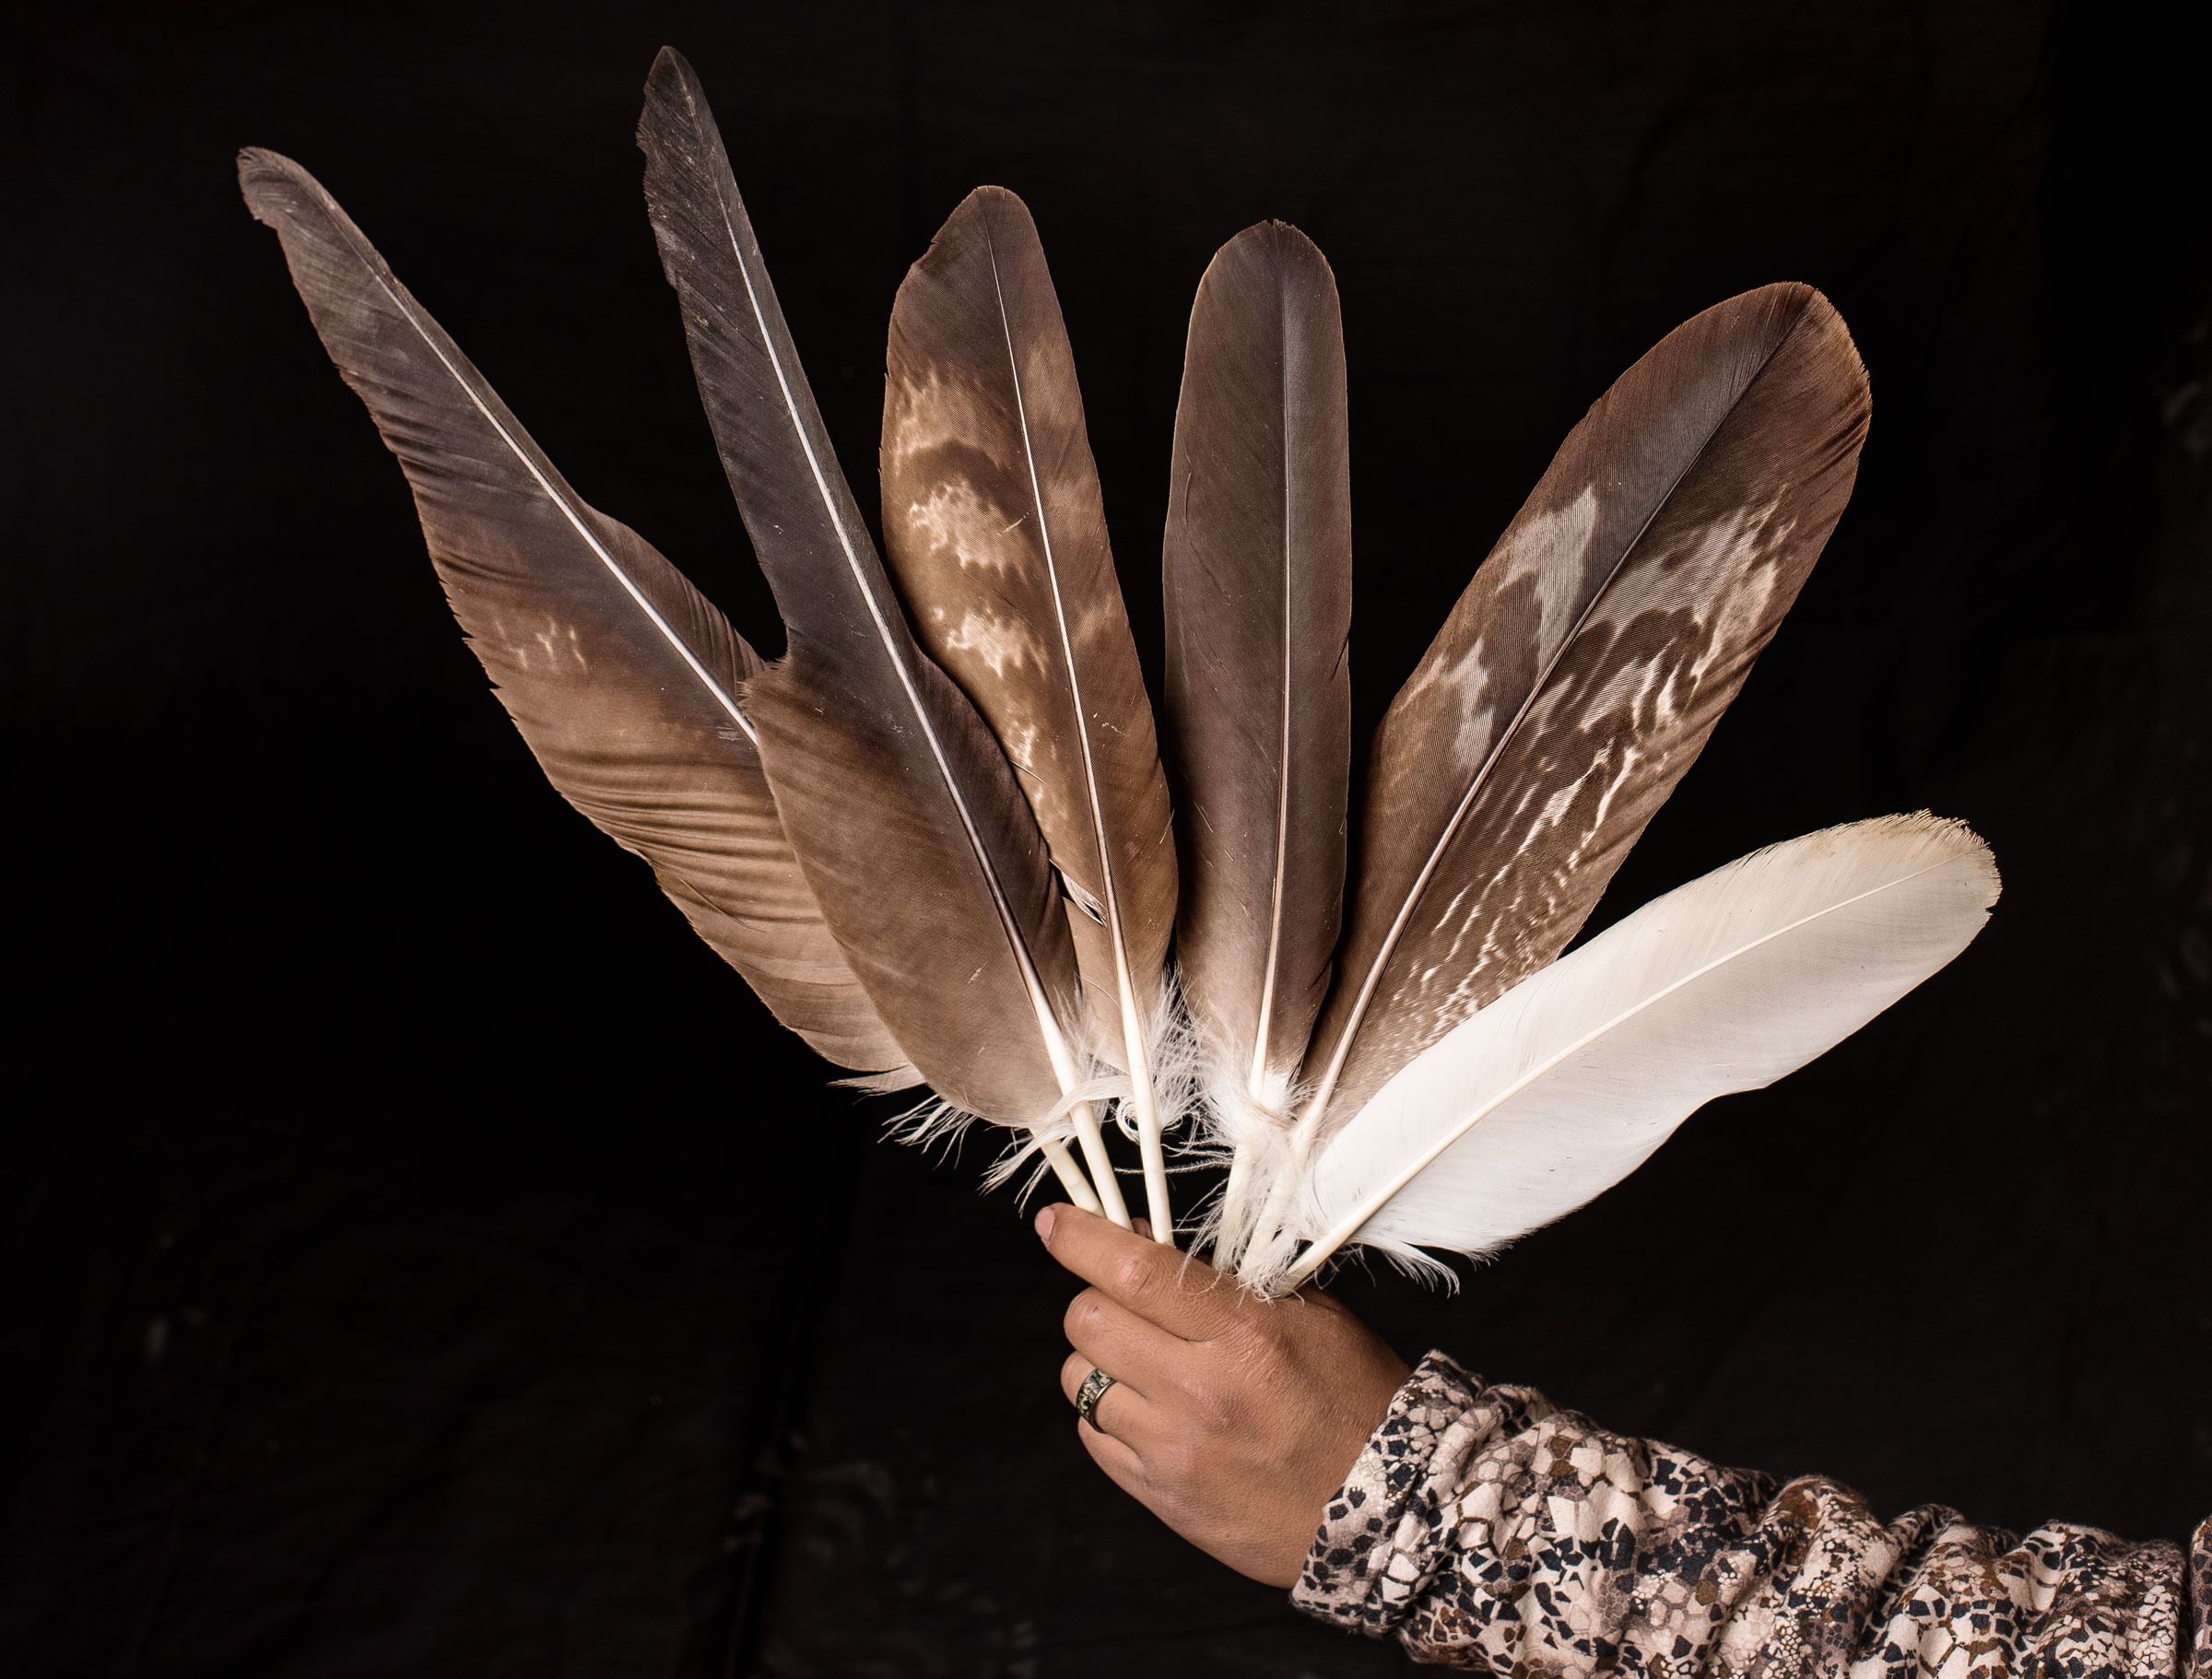 Golden and Bald Eagle feathers collected from captive birds at the Zuni Pueblo Tribal Eagle Aviary. Dawn Kish